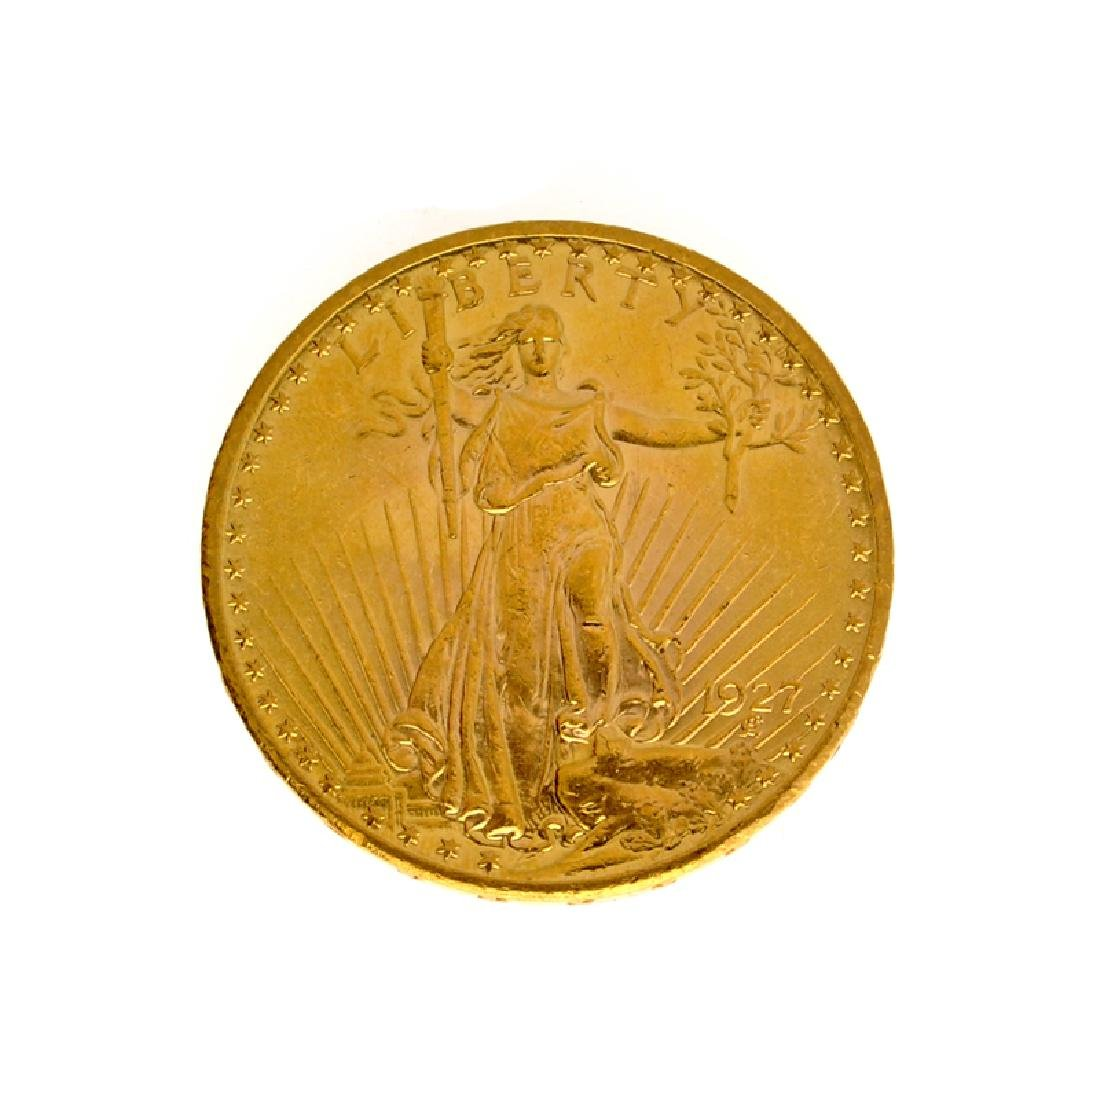 *1927 $20 U.S. Saint Gaudens Gold Coin (DF)